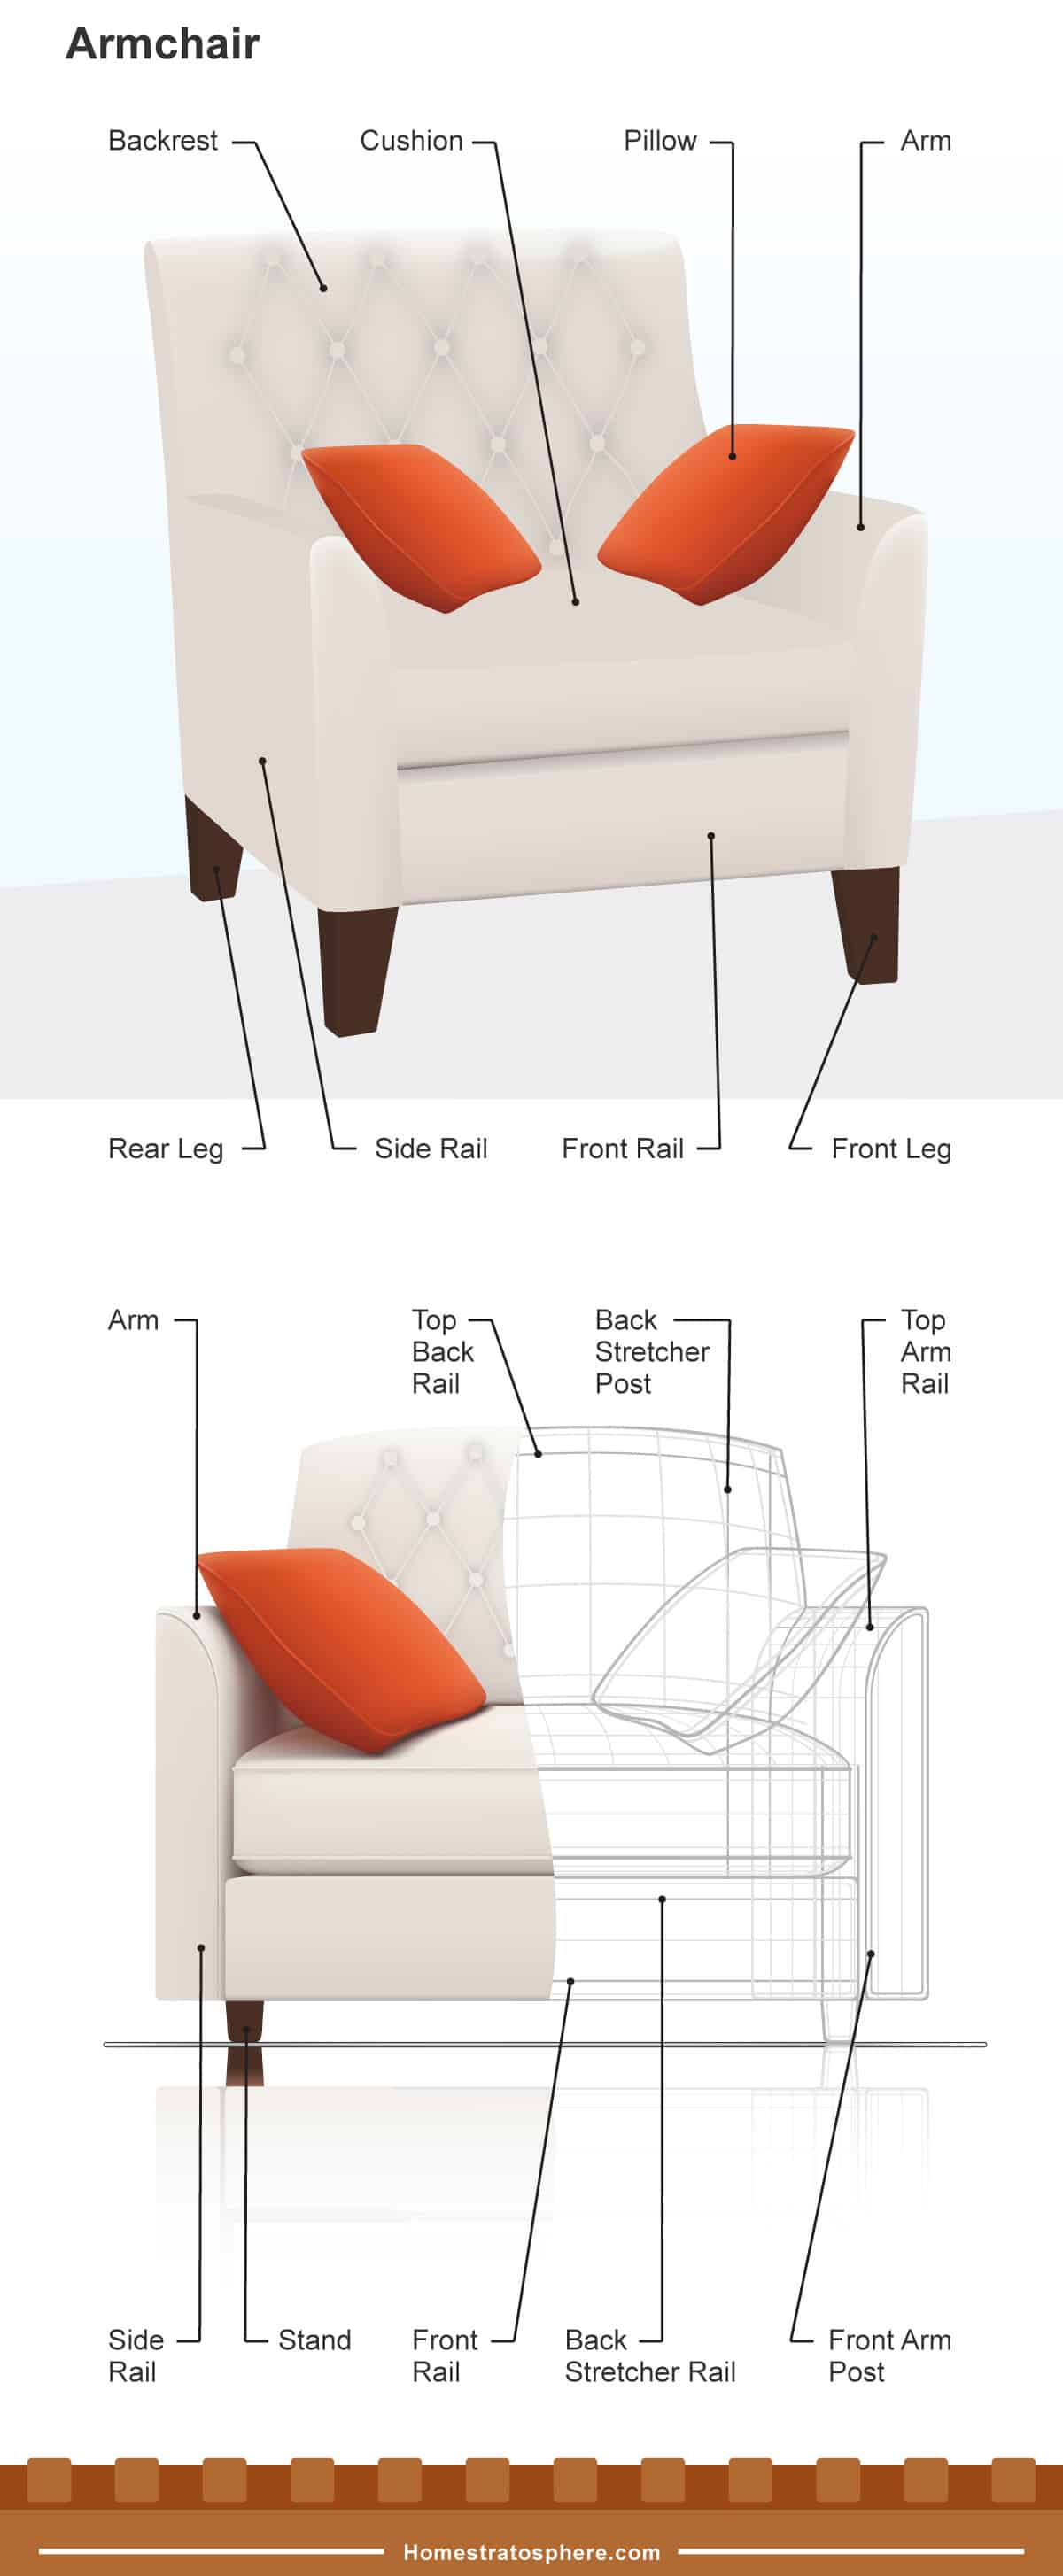 hight resolution of anatomy of an armchair diagram